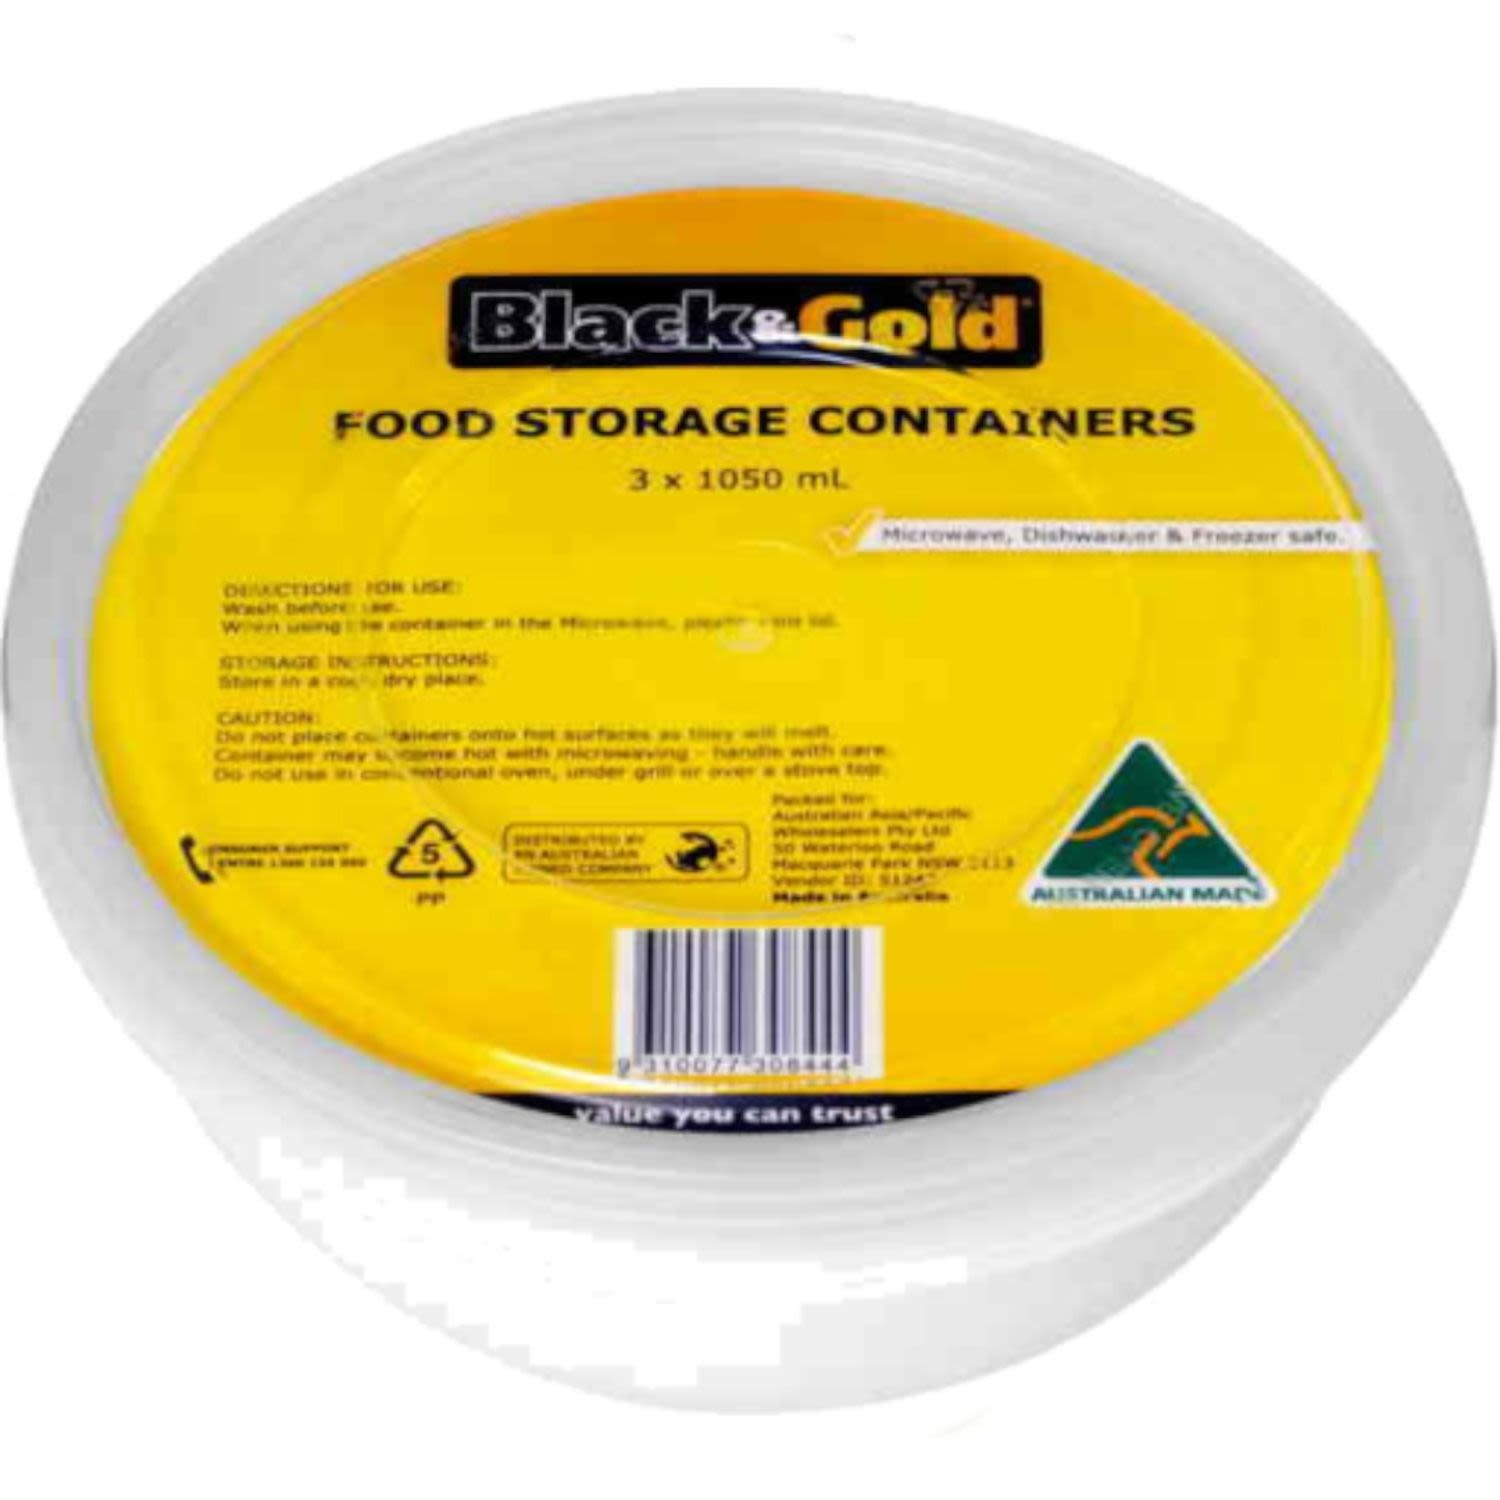 Black & Gold Round Container 1050ml, 3 Each